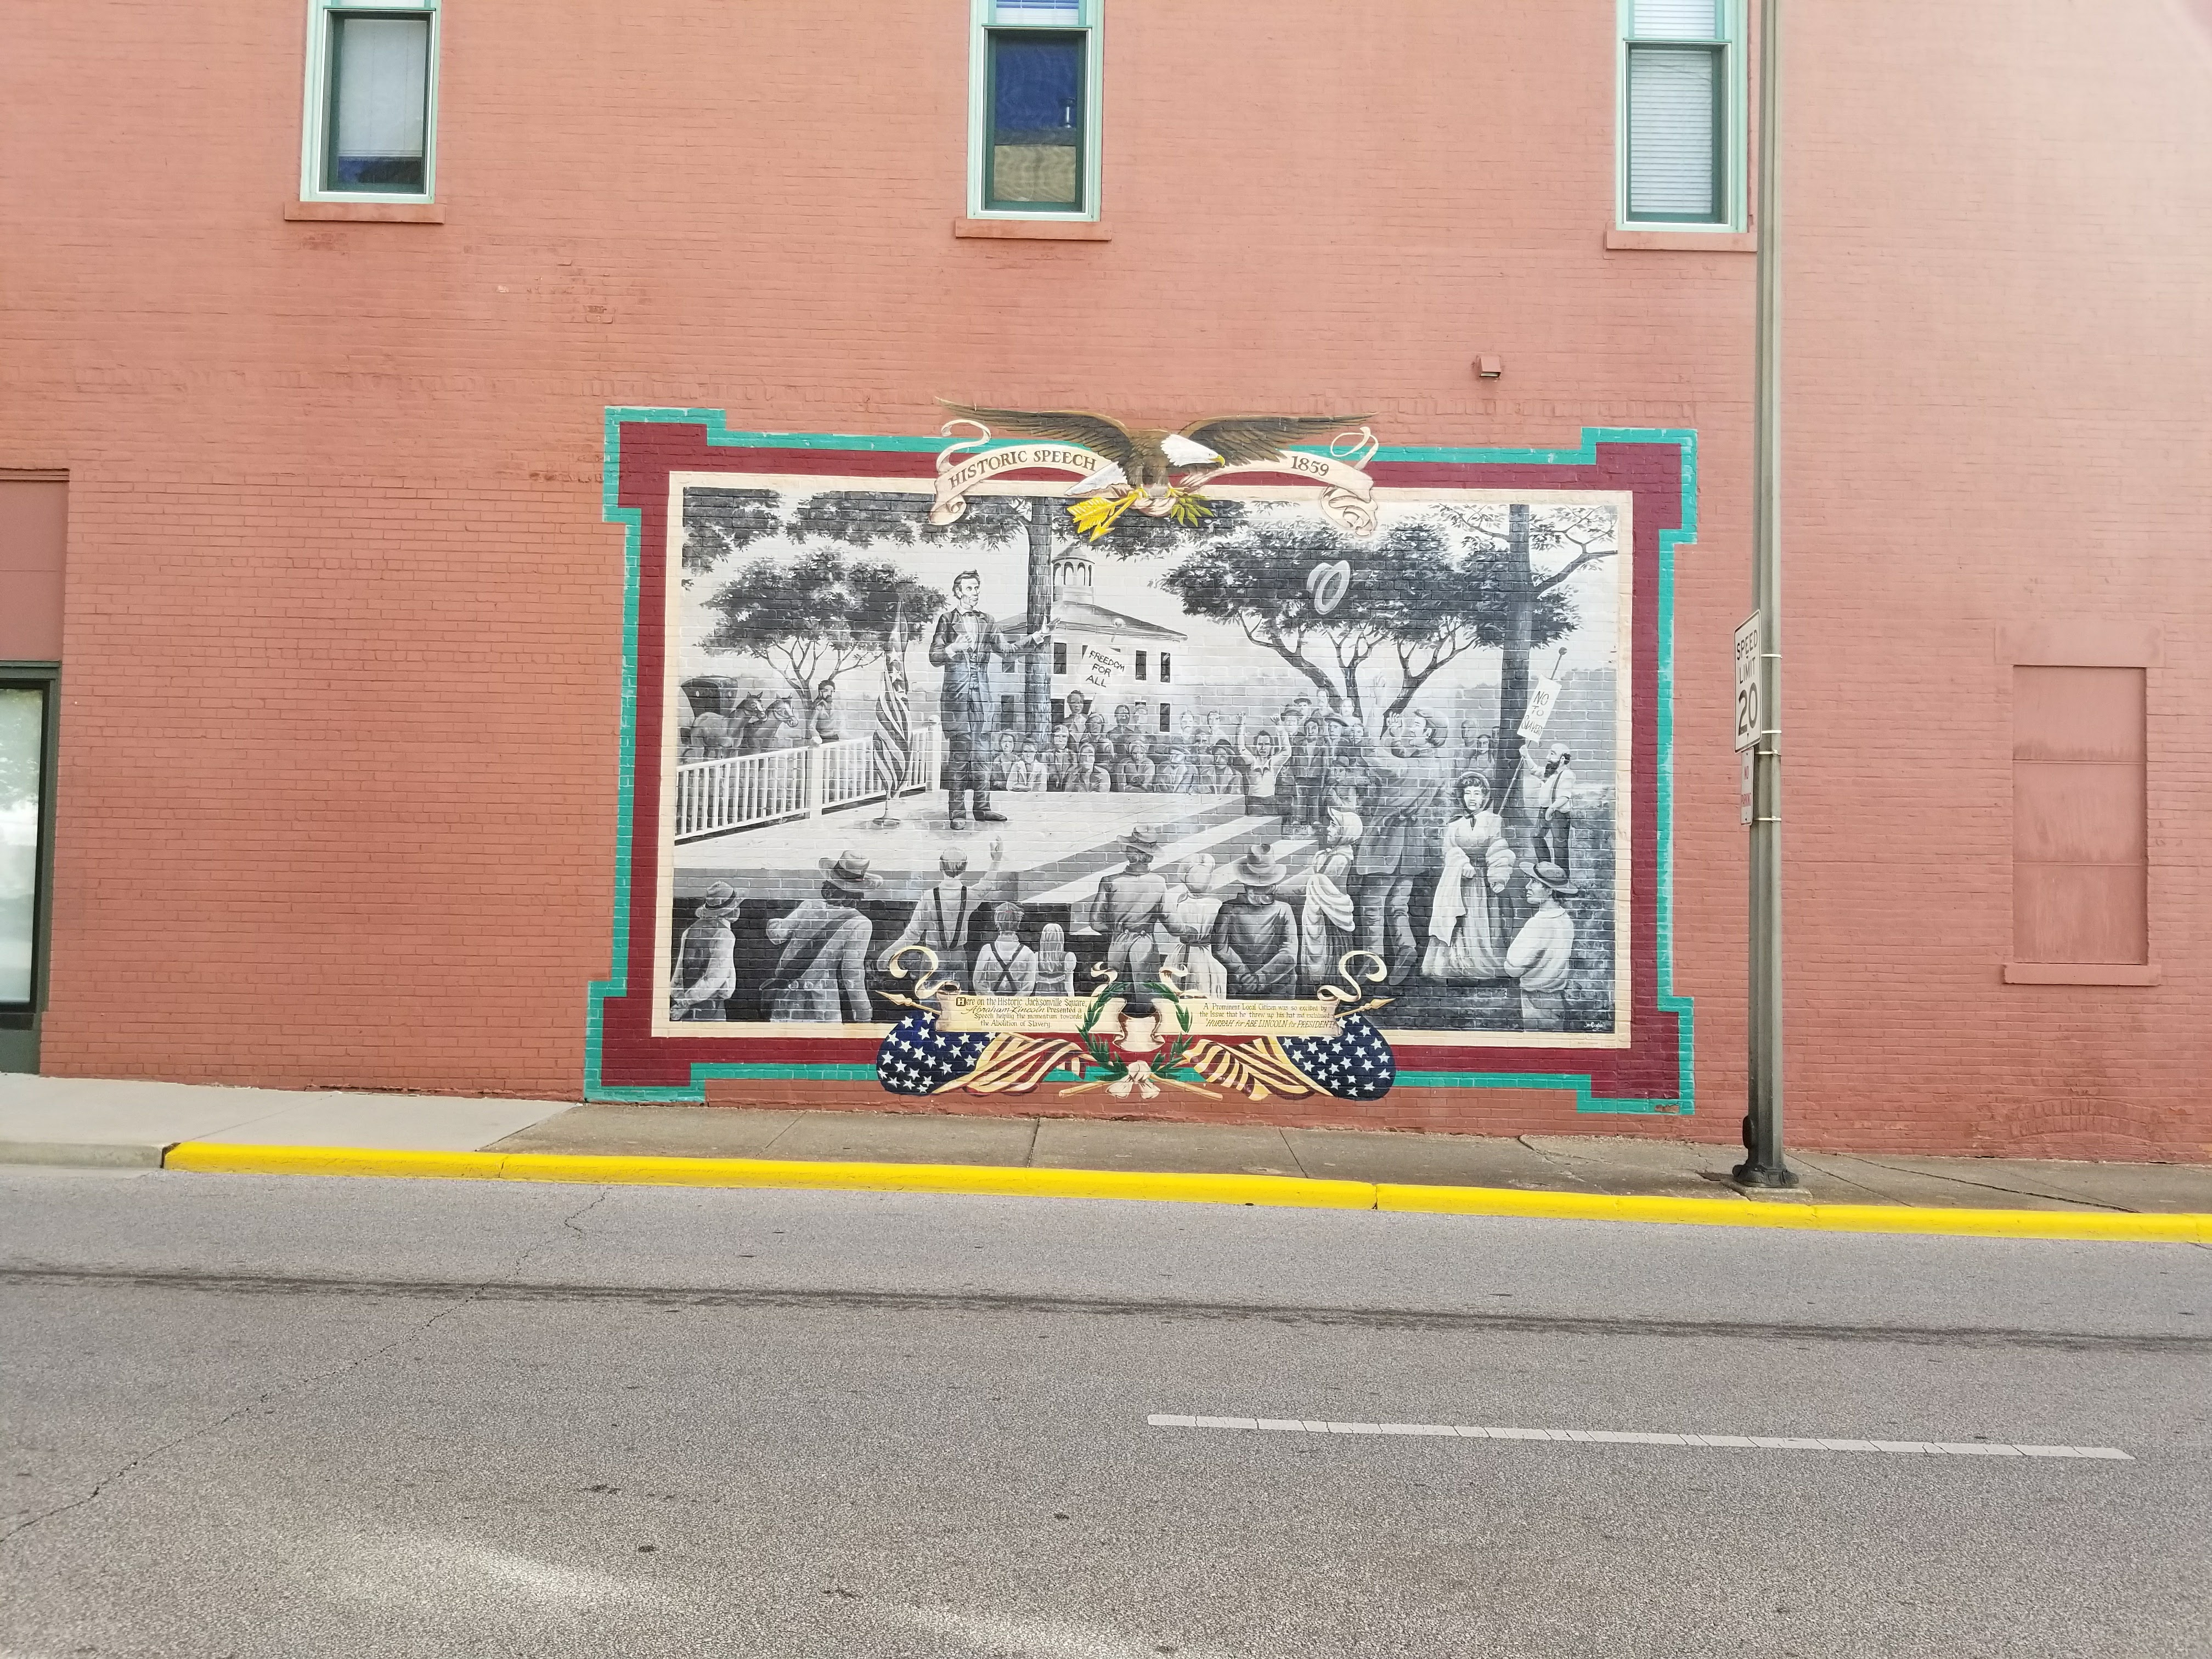 This is an overall picture of the mural